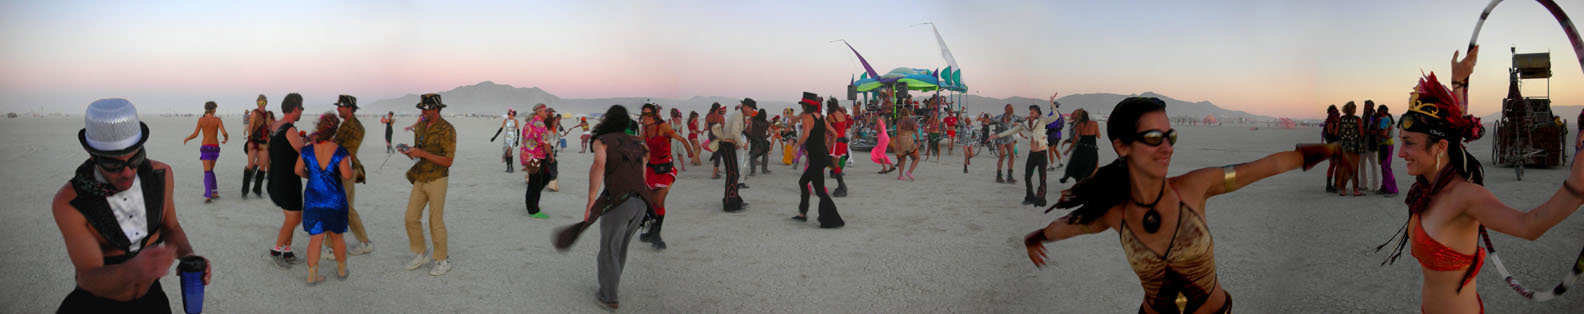 Otter Clan Dance on the Playa